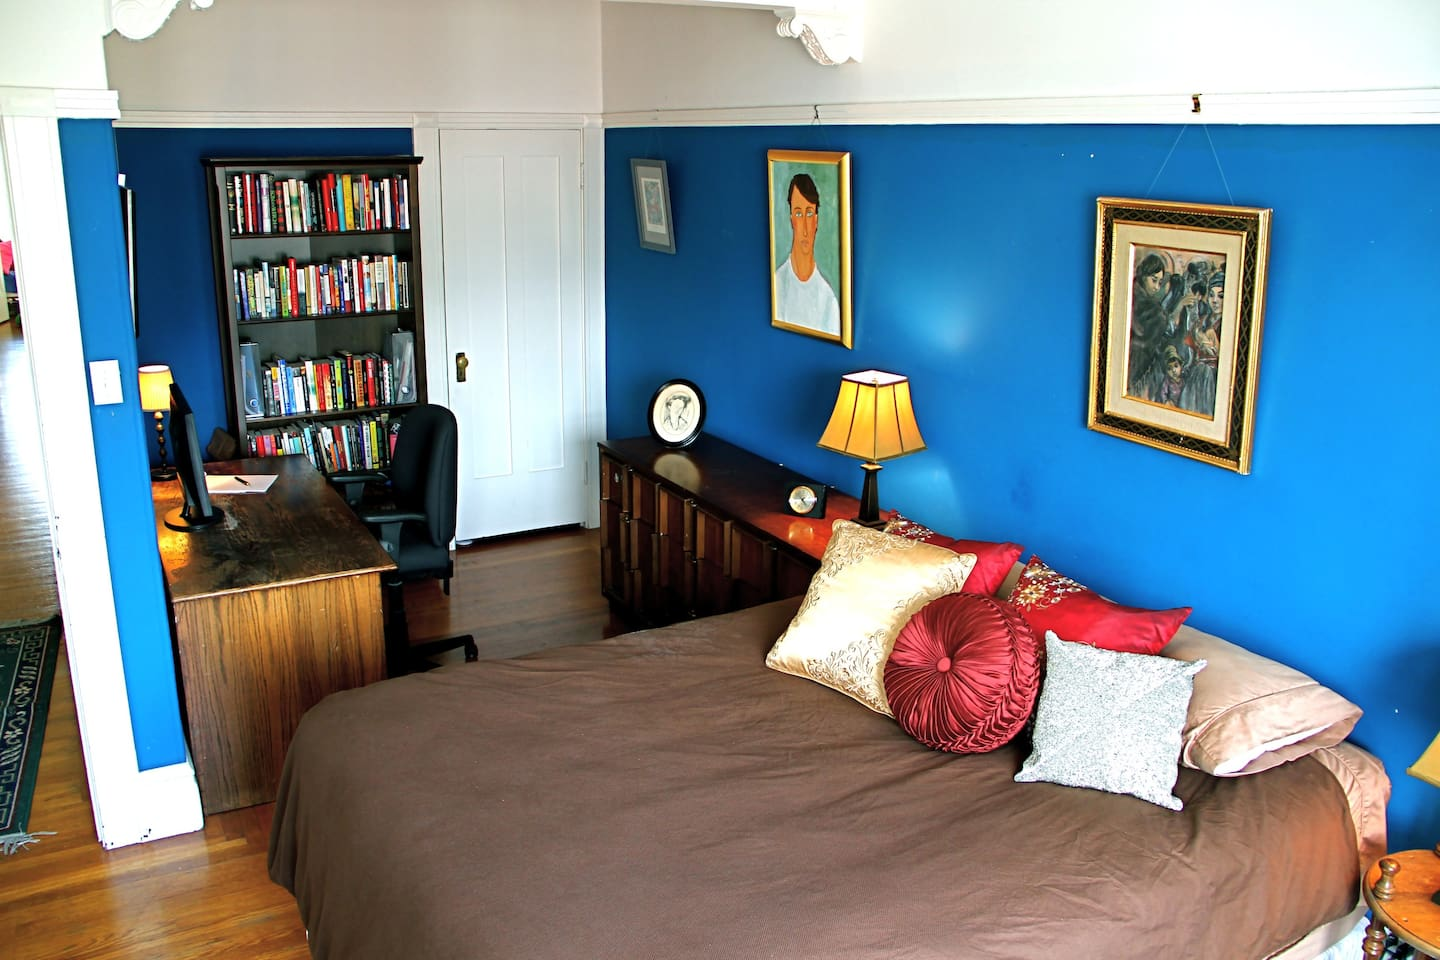 The Cool Blue Room is a stunning relaxing blue surrounding a pillow-topped queen bed.